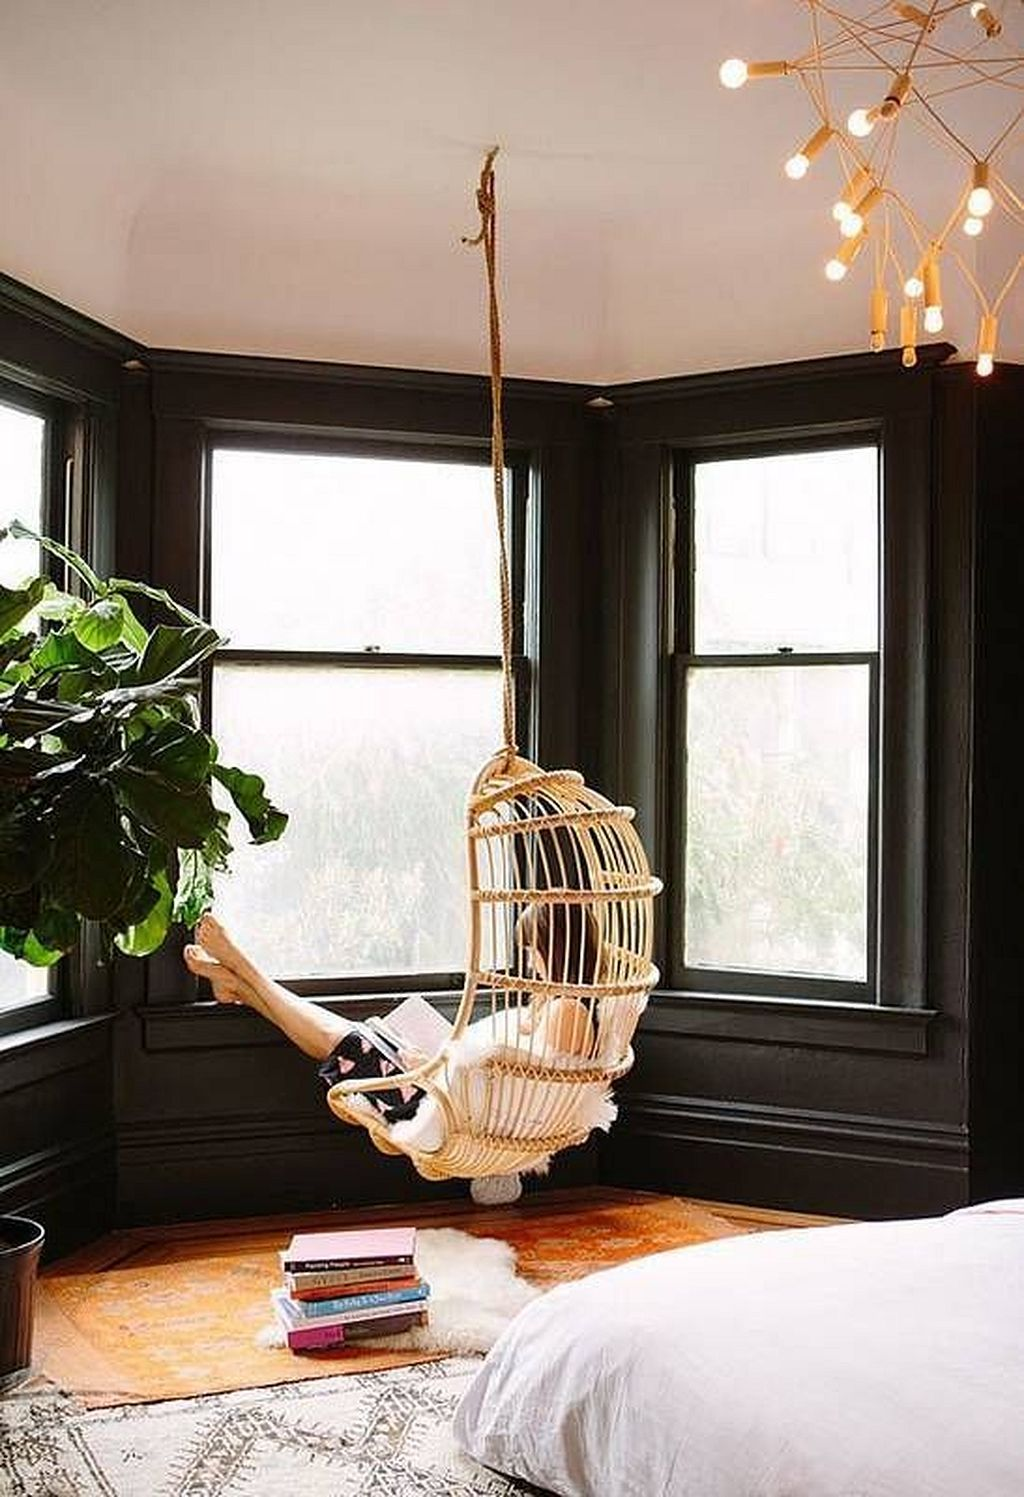 Bay window ideas bedroom  awesome  cozy reading bay window ideas pinarchitecture